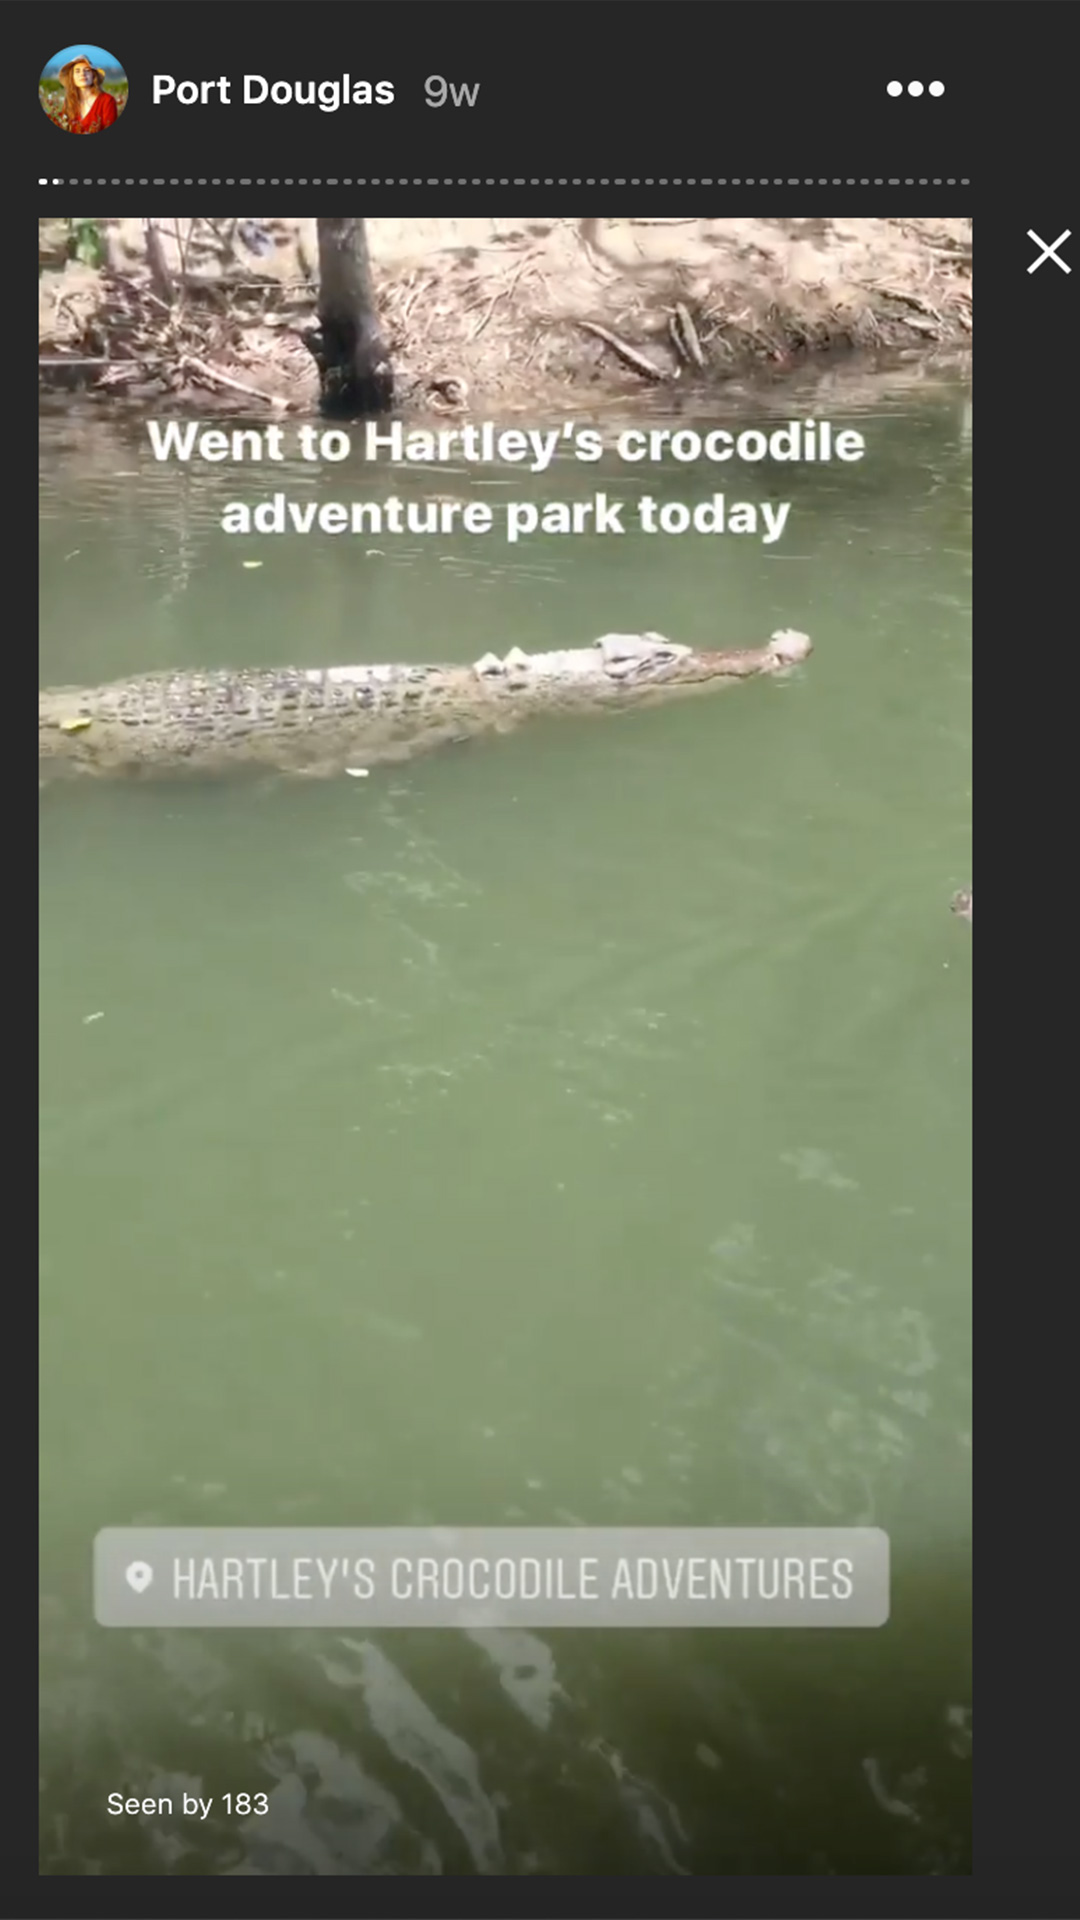 salt water crocodile at hartley's adventure park in port douglas in australia